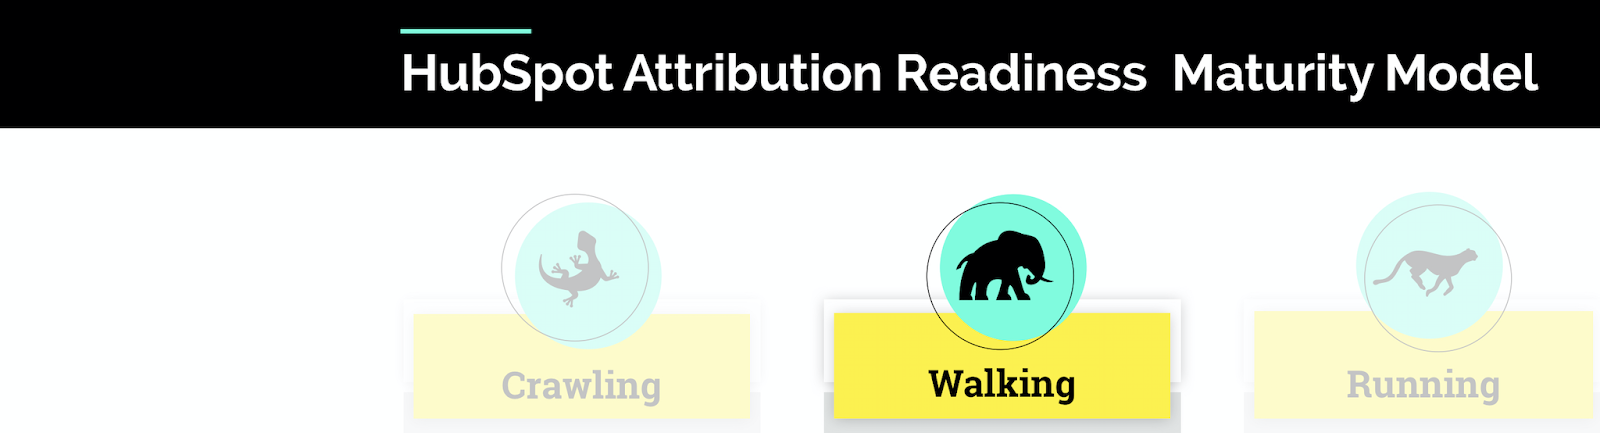 HubSpot Attribution Readiness Walking Result